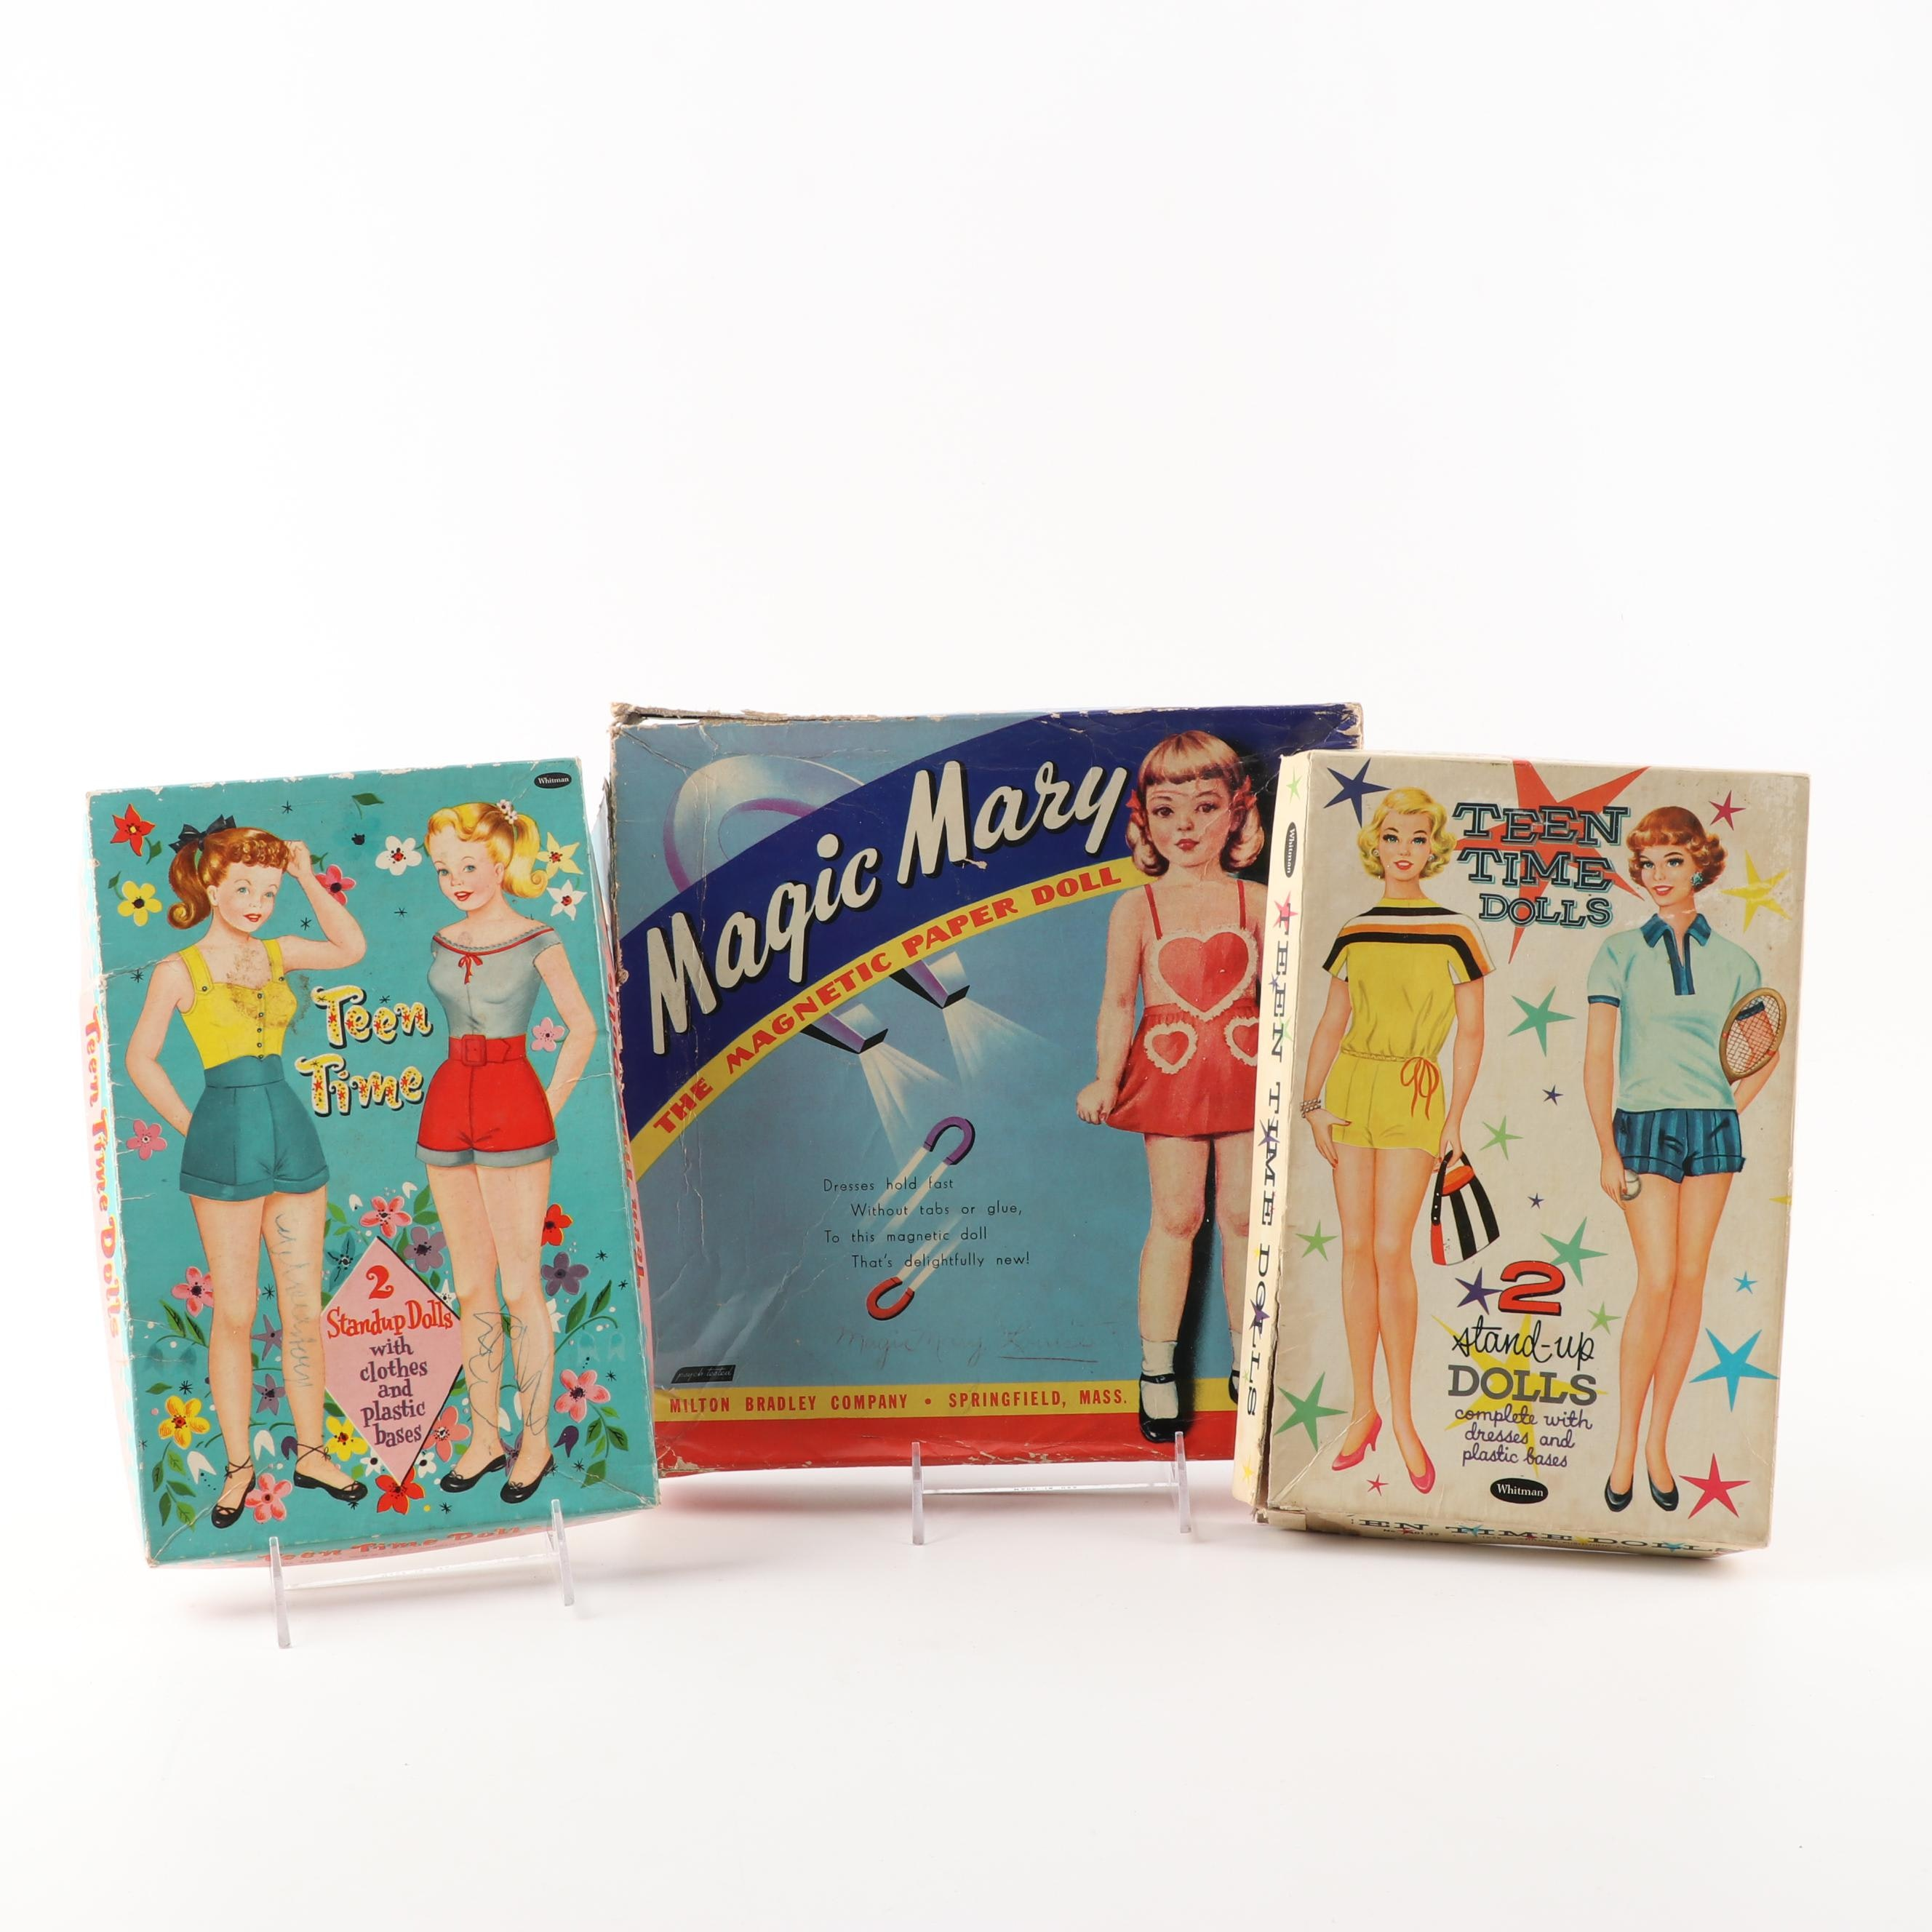 Vintage Teen Times Stand-up Dolls and Magic Mary Magnetic Paper Doll